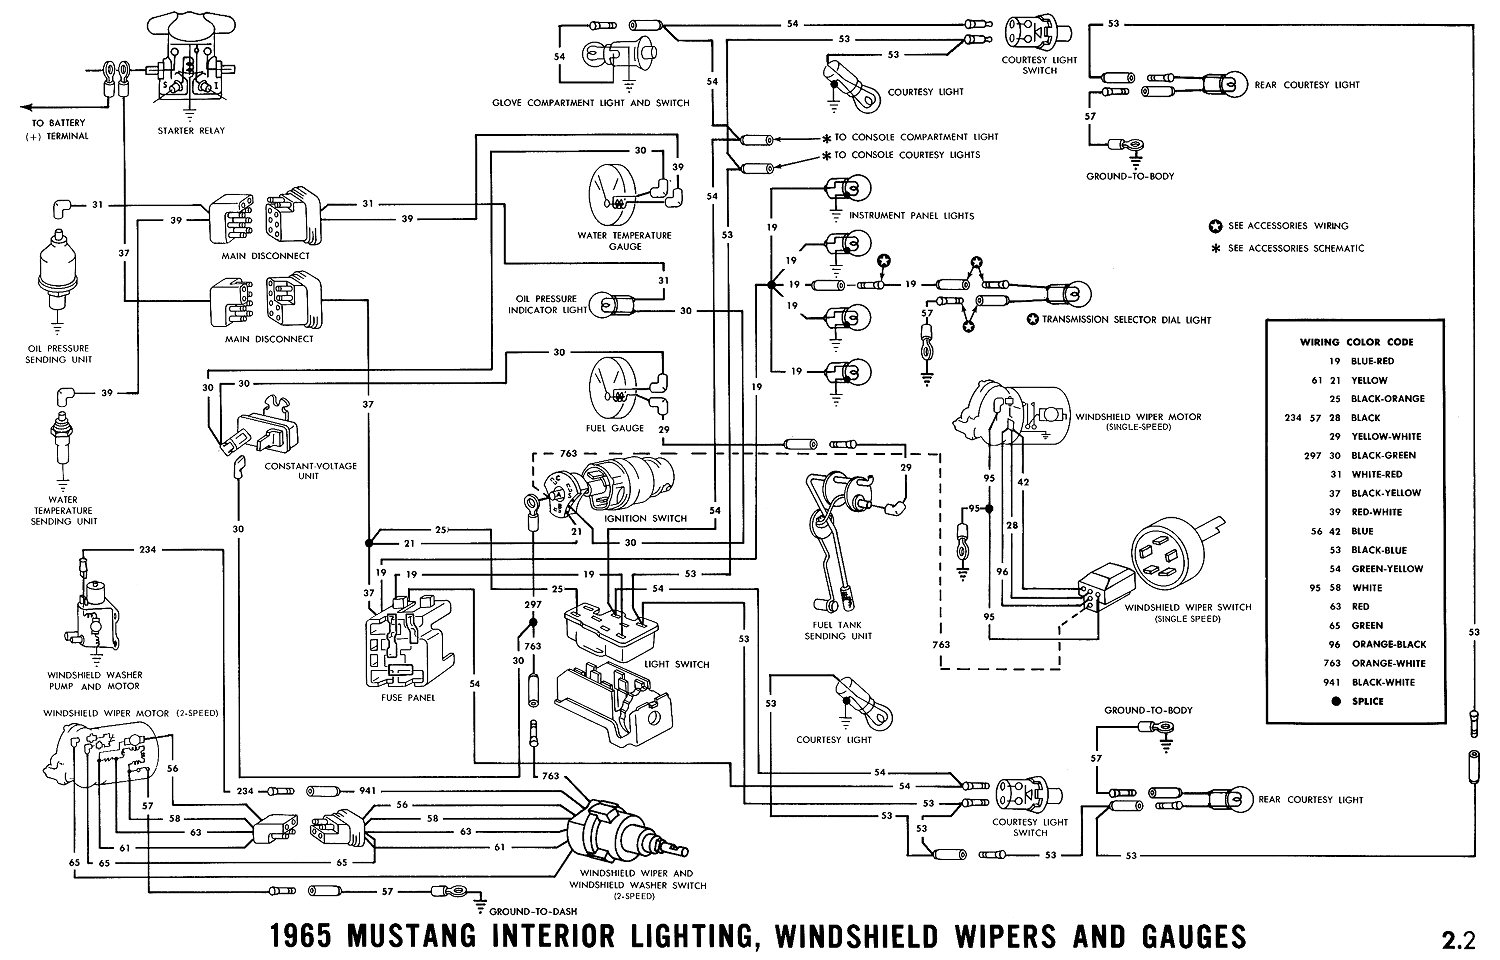 1965 mustang ignition wiring diagram Collection-67 Mustang Wiring Diagram 12-e